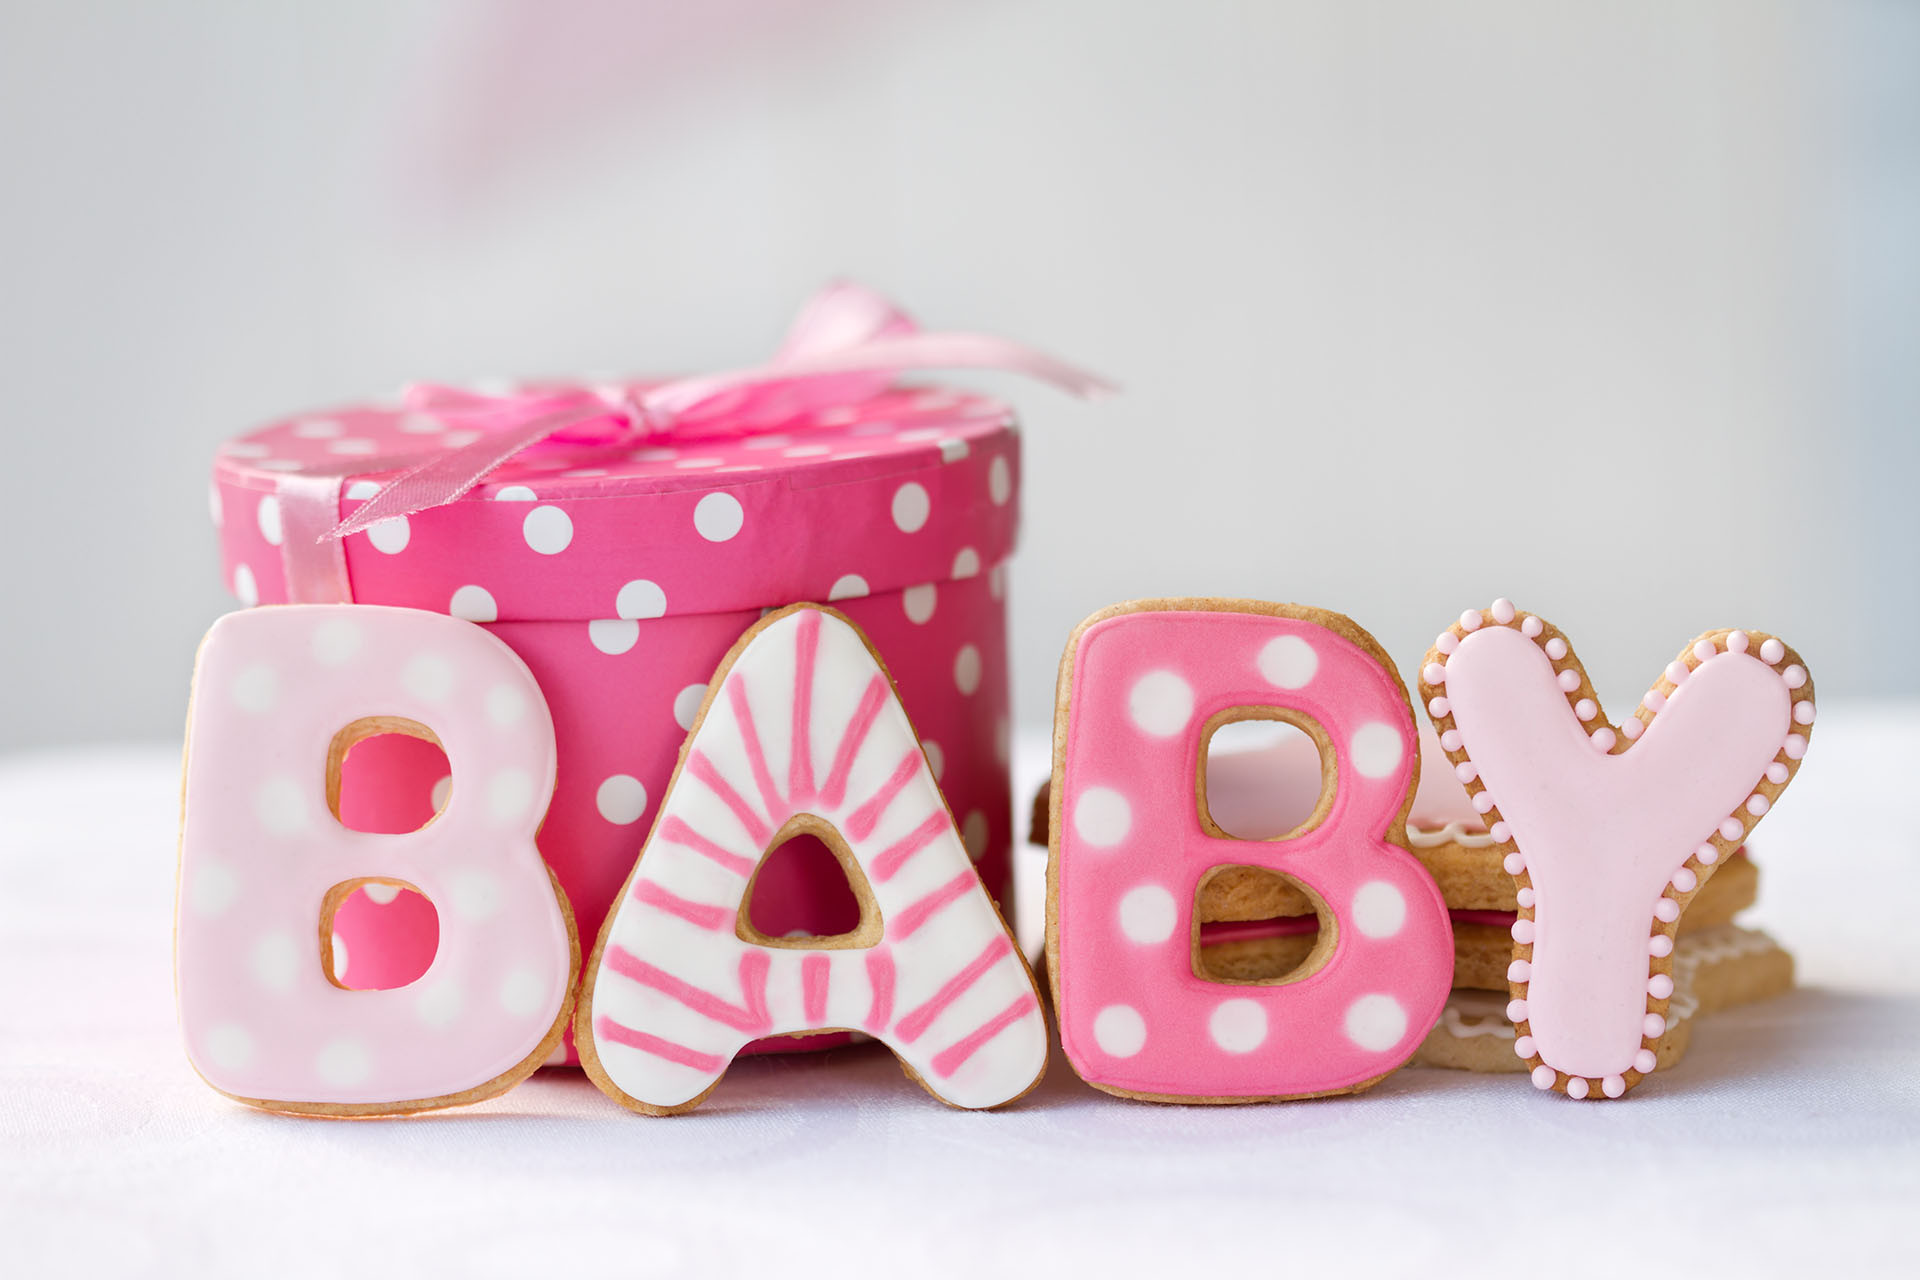 Best ideas about Gift Ideas For Baby Reveal Party . Save or Pin Top 5 Gender Reveal Party Gift Ideas Now.